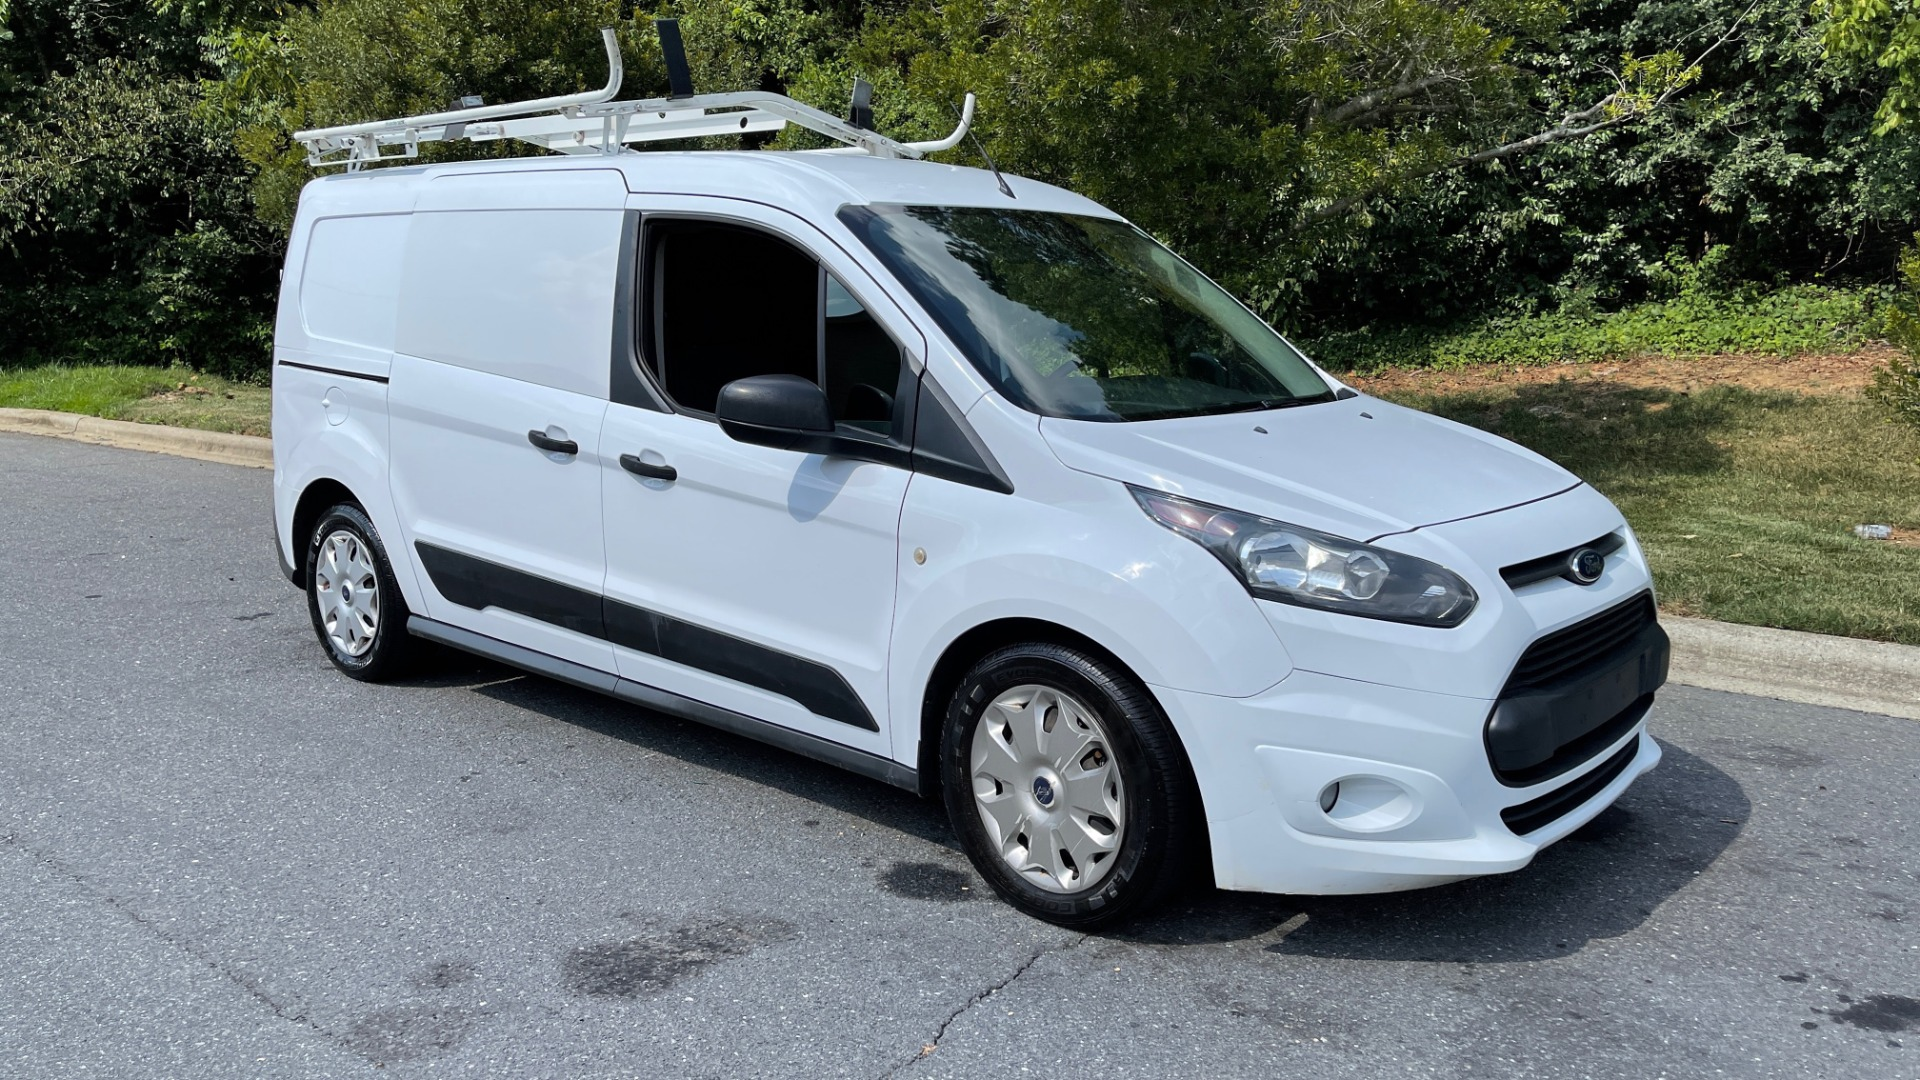 Used 2015 Ford TRANSIT CONNECT XLT CARGO VAN LWB / 2.5L 4-CYL / 6-SPD AUTO / ROOF RACK for sale $15,199 at Formula Imports in Charlotte NC 28227 4